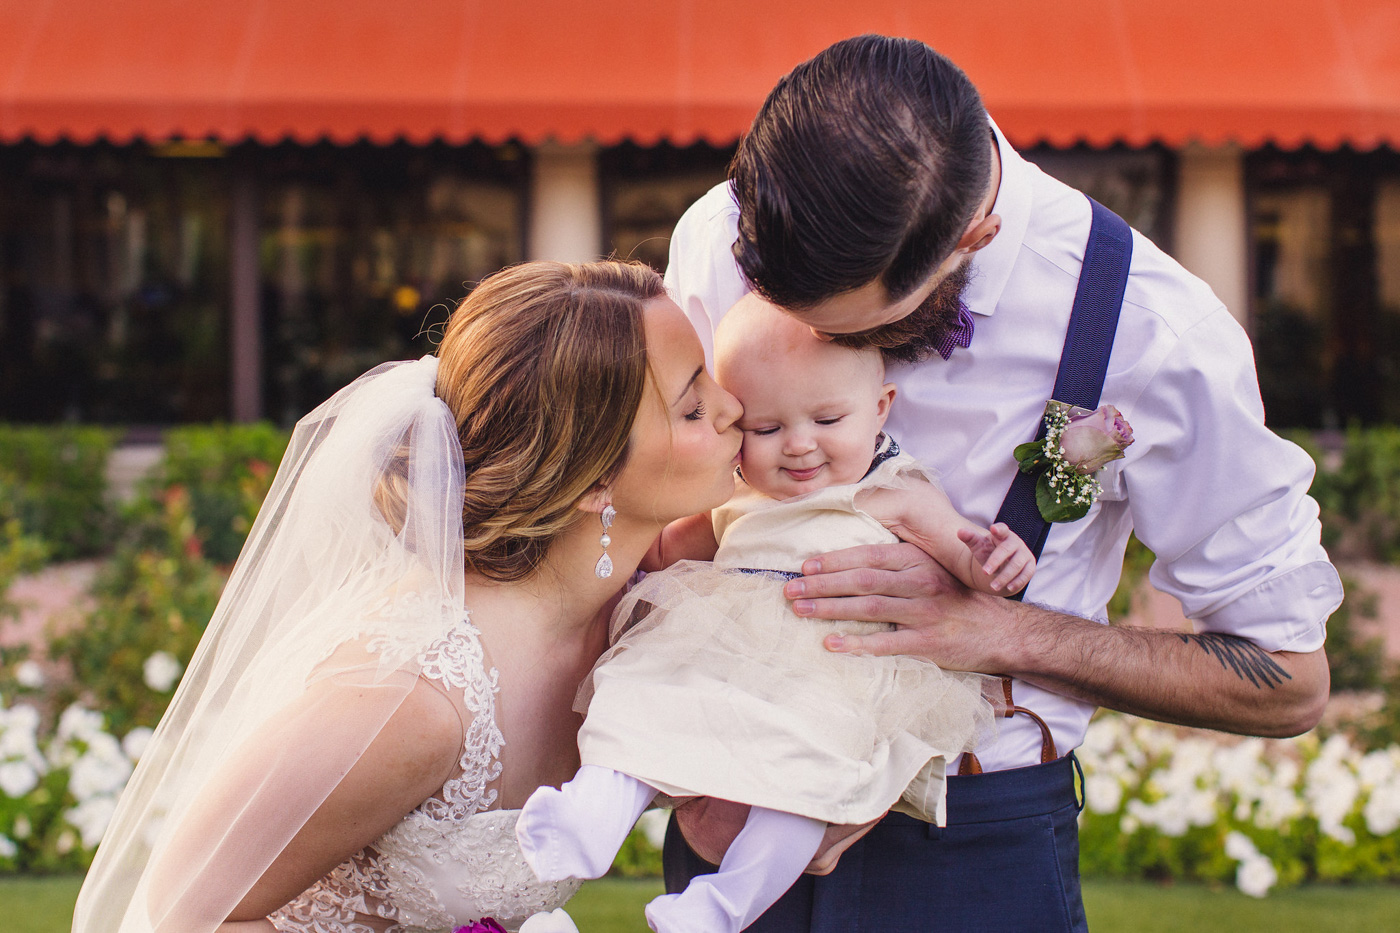 sweet-family-wedding-photo